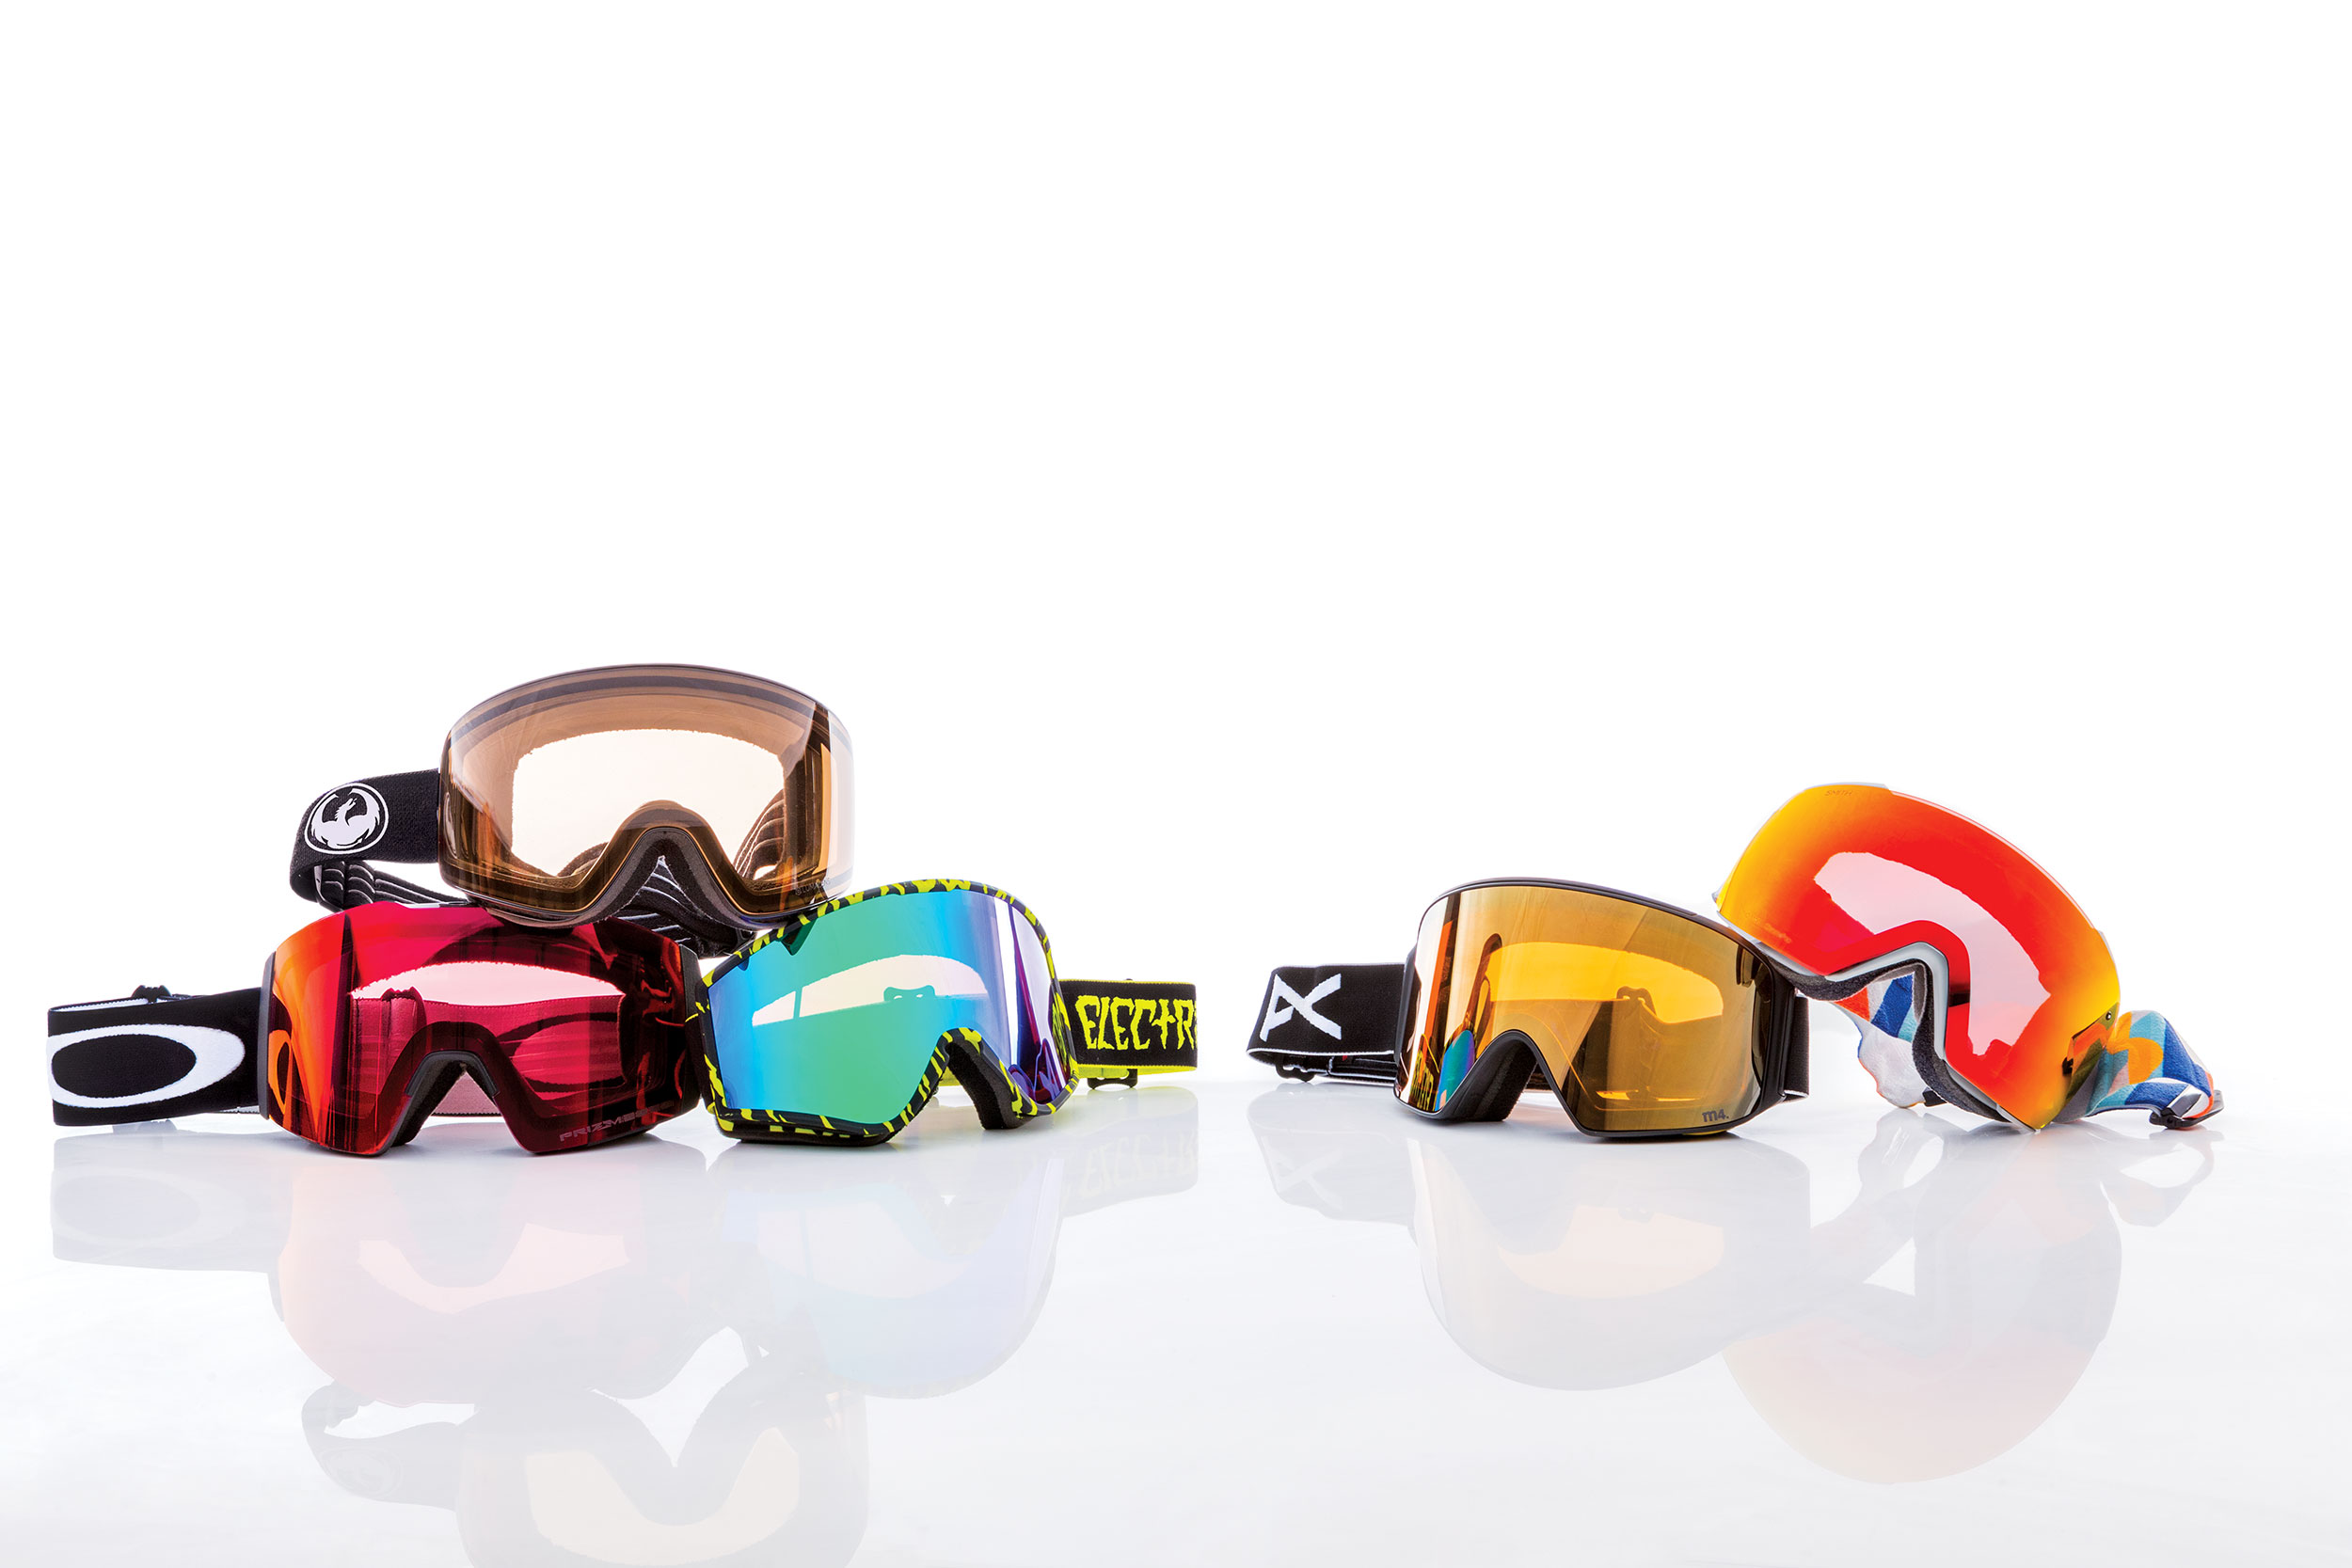 Best Snowboard Goggles 2020 The Best Snowboarding Goggles from 2018 2019 | Snowboarder Magazine